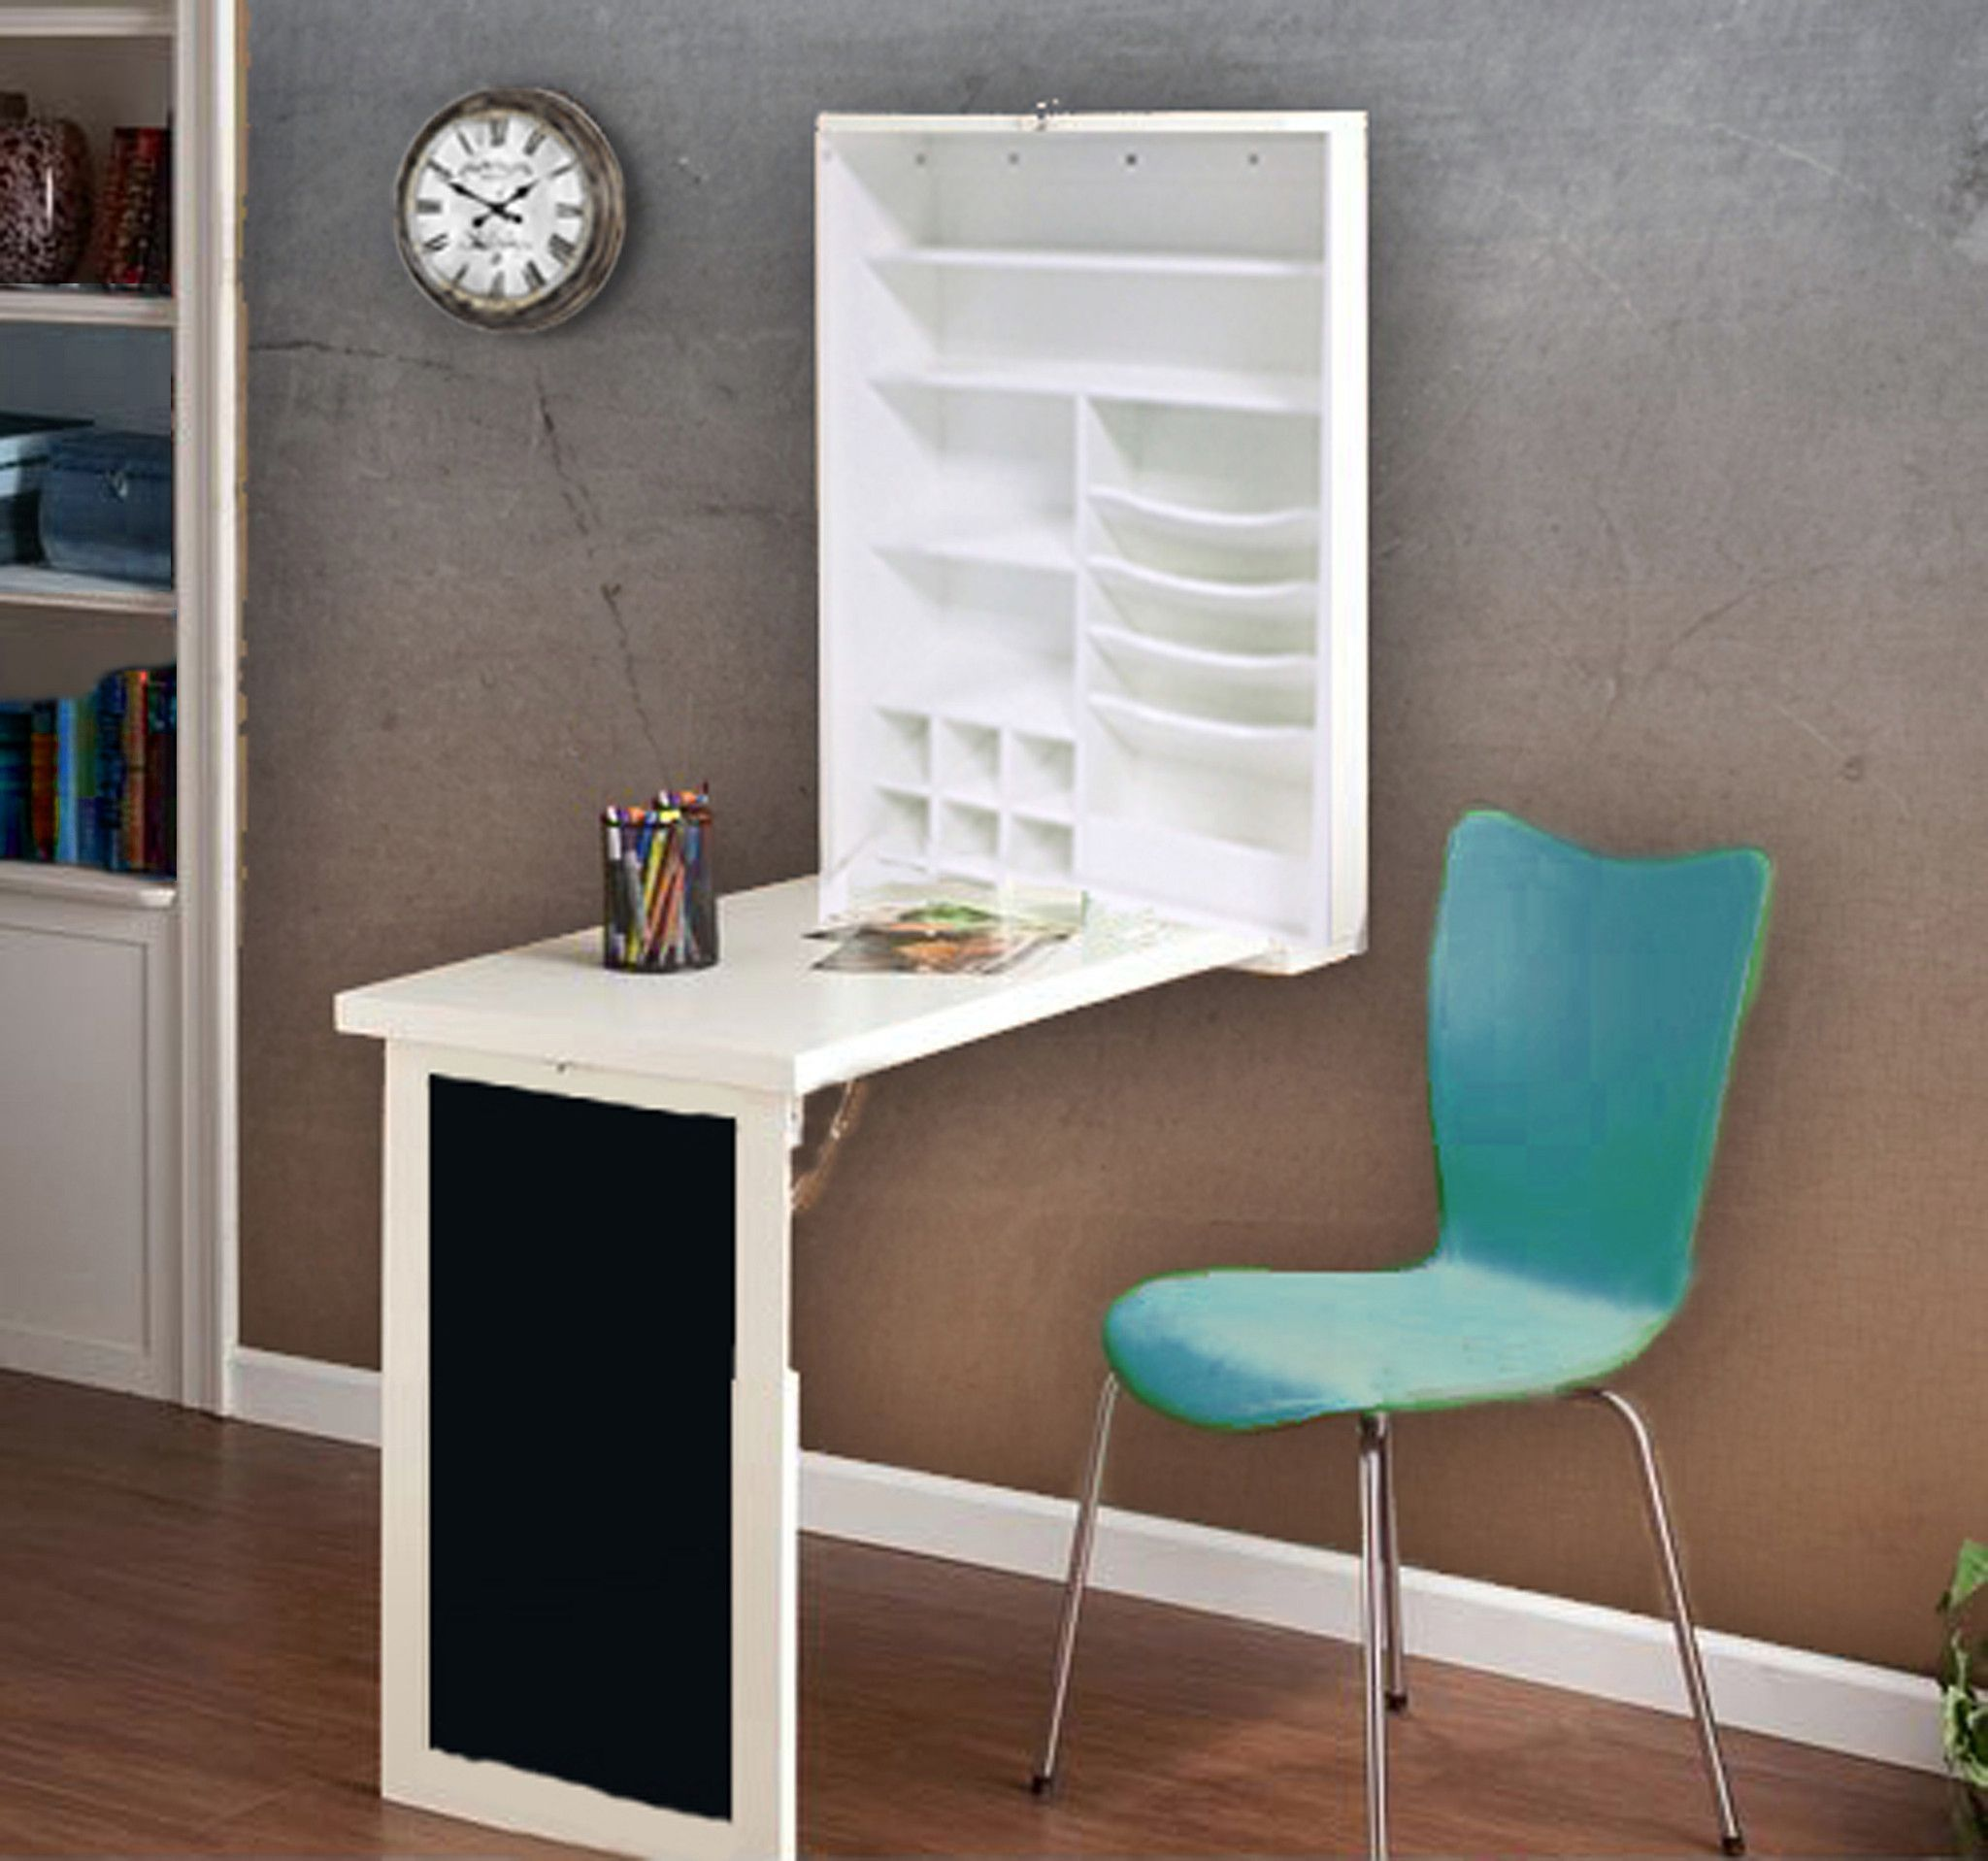 Diy Bedroom Cabinets Fold Down Desk Table Wall Cabinet With Chalkboard White Or